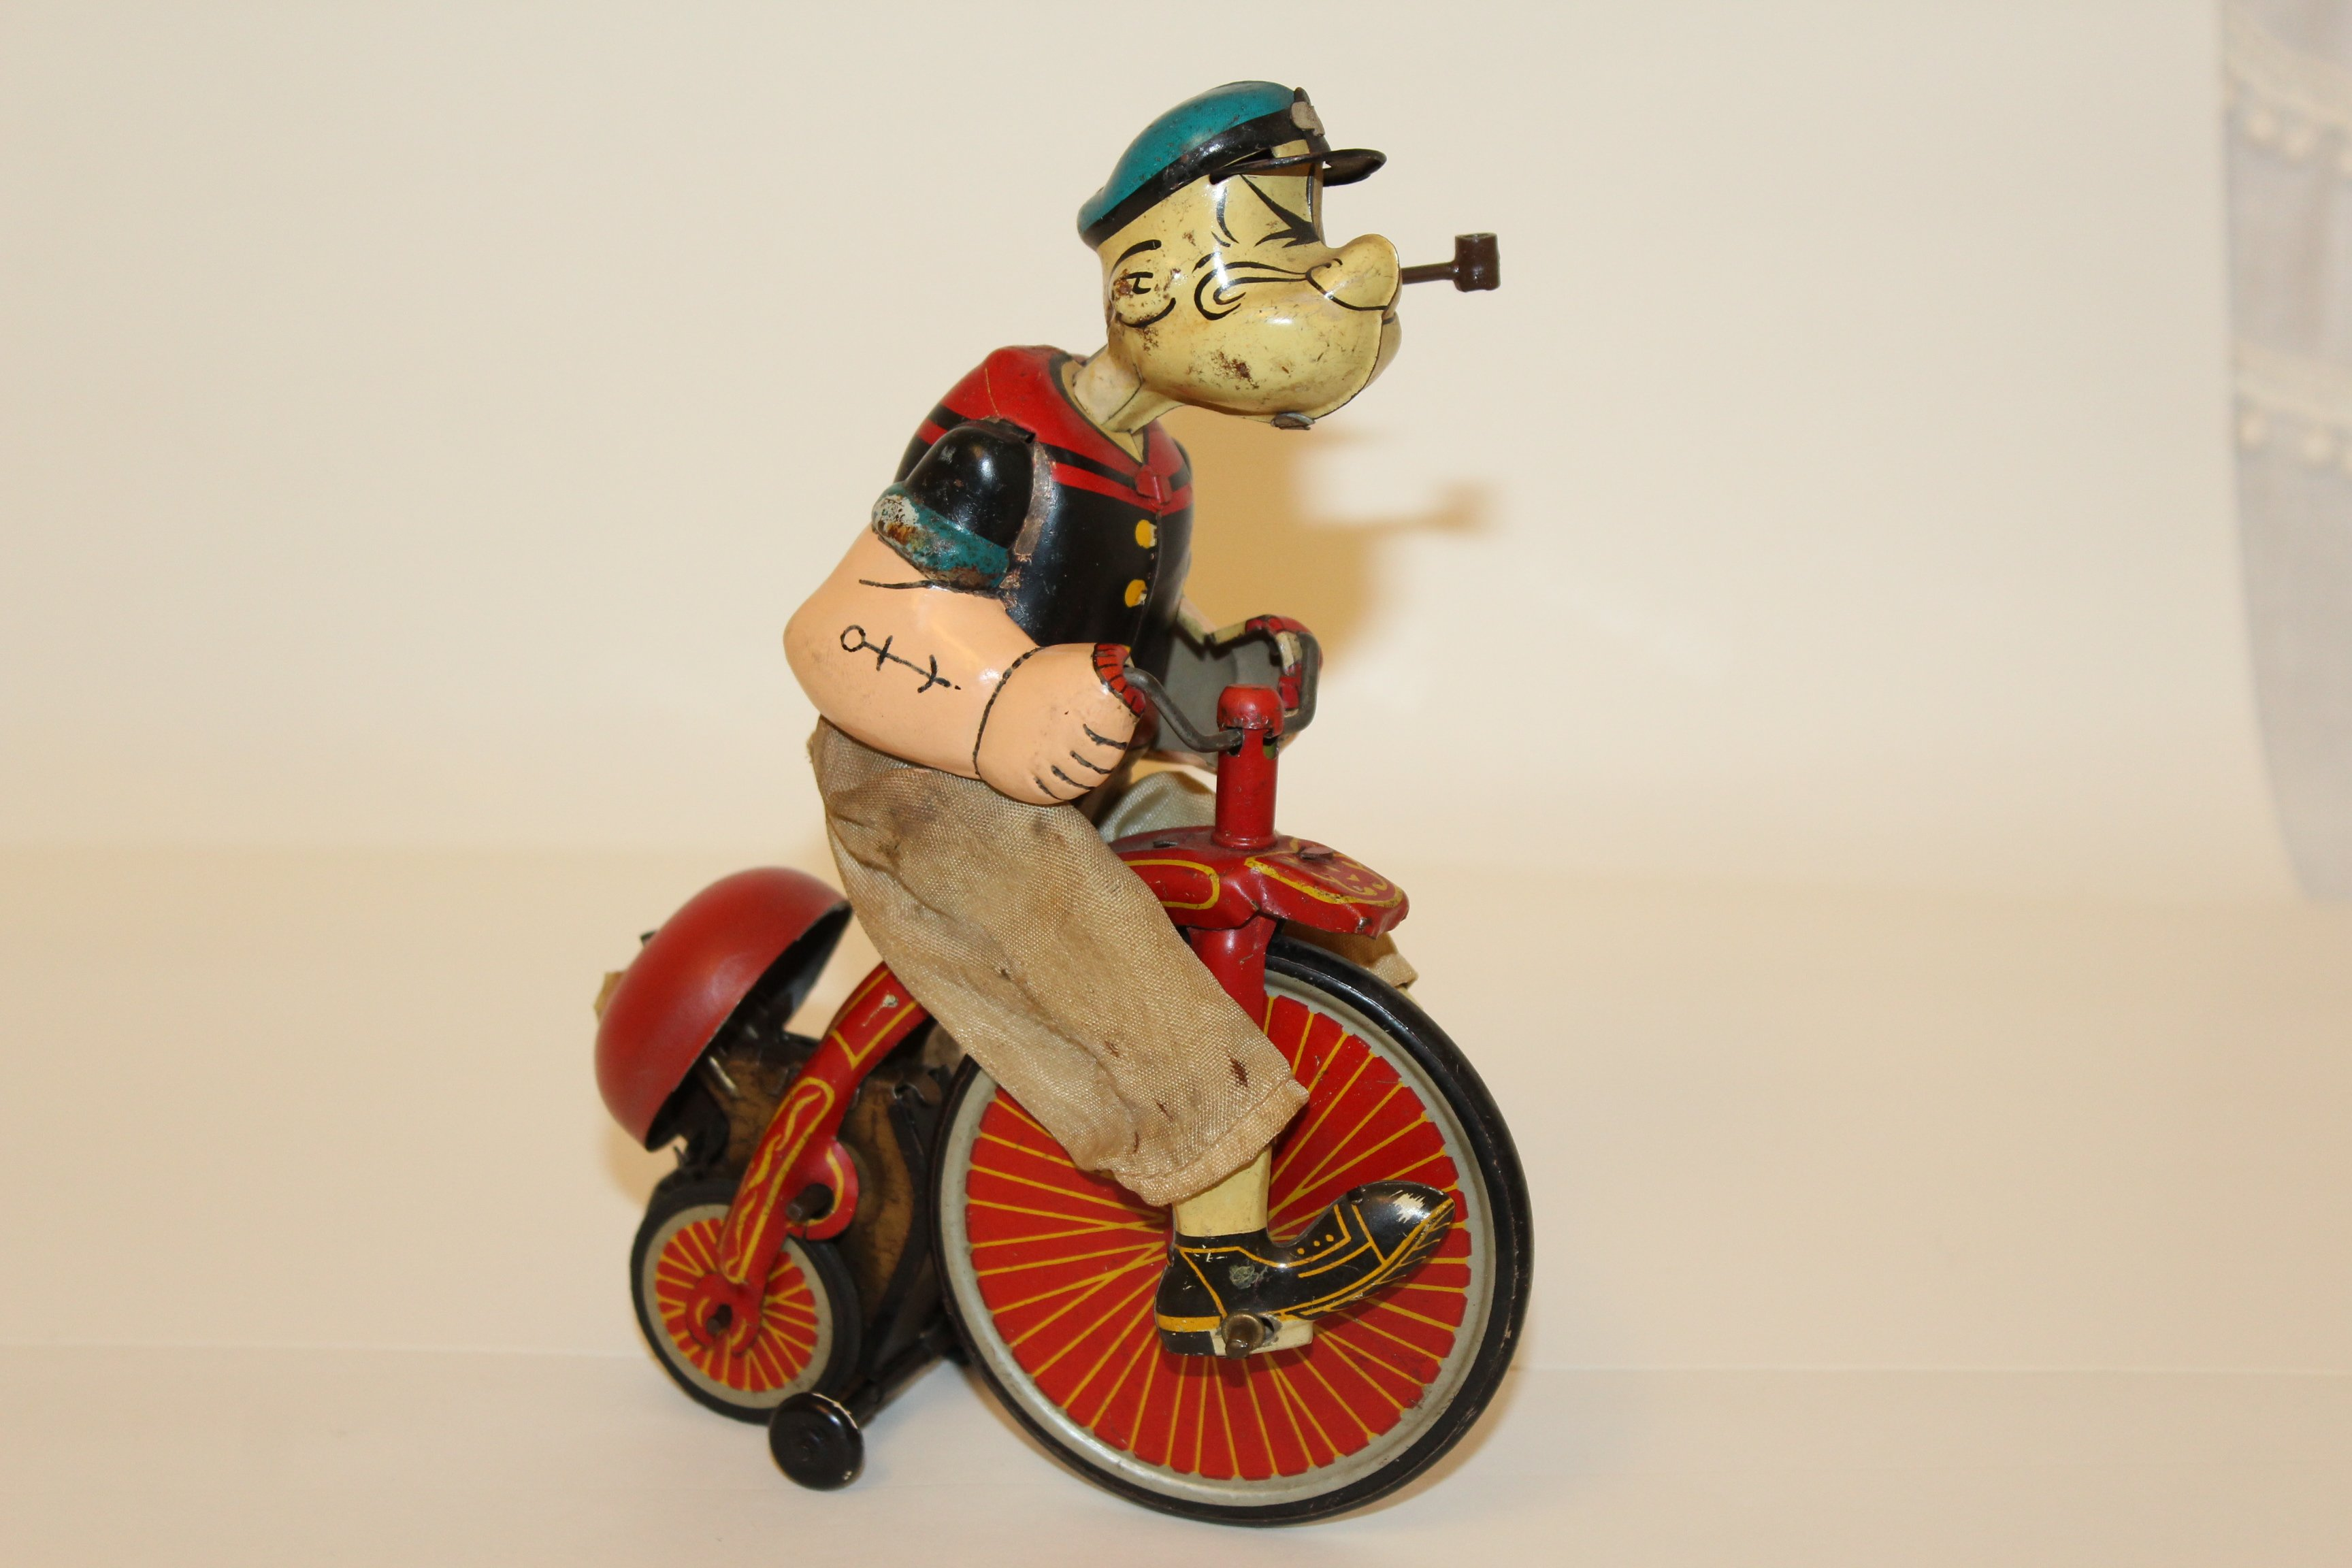 https://0201.nccdn.net/1_2/000/000/08a/7b8/Popeye-on-Tricycle.JPG